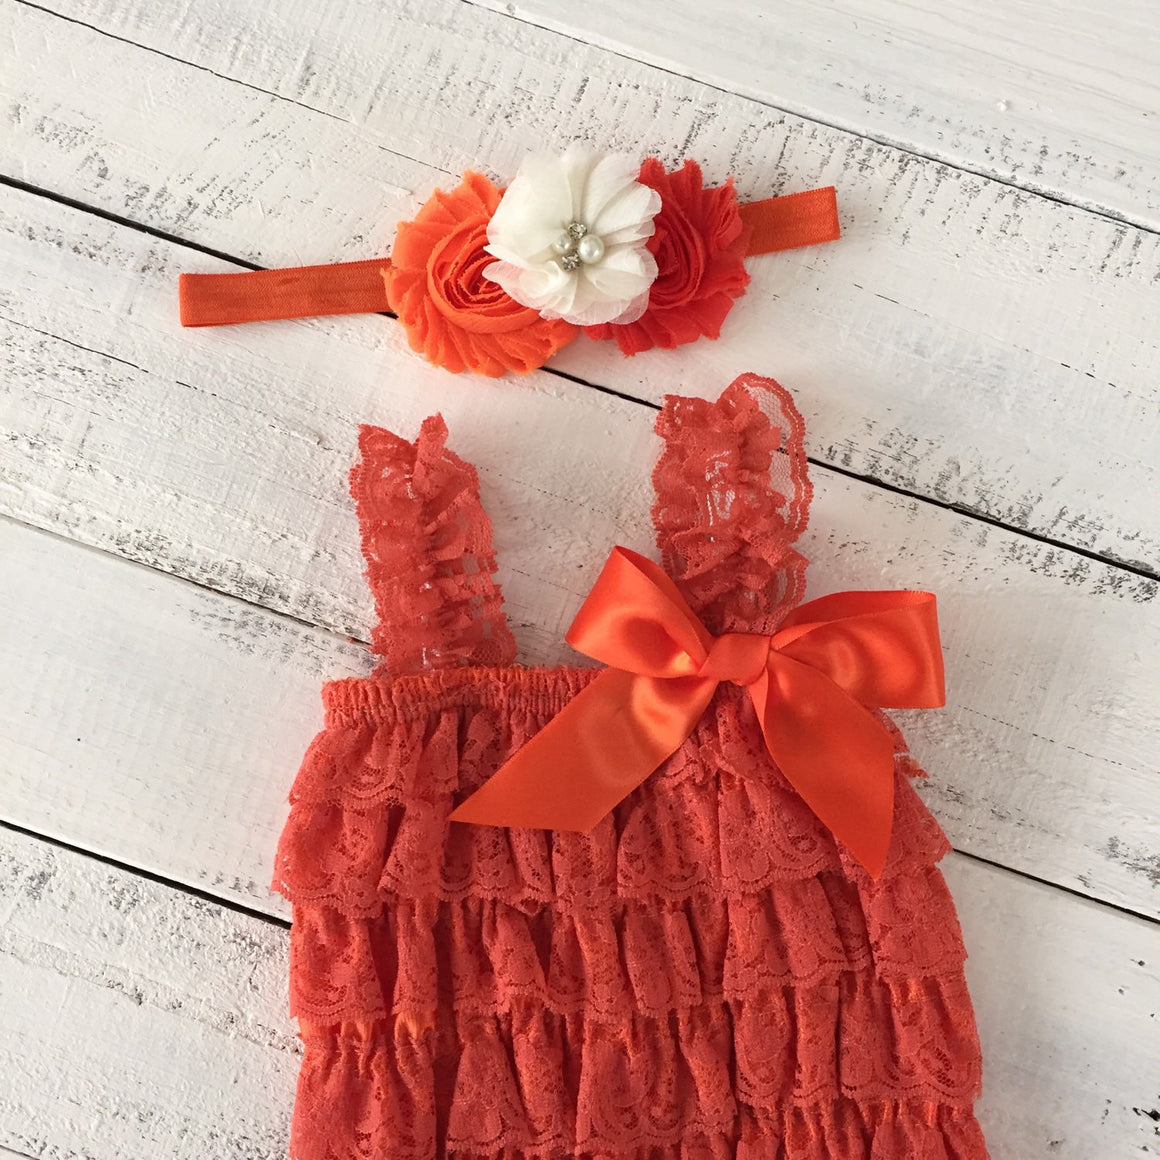 Lace Petti Romper - Embelished Orange romper and matching headband - HoneyLoveBoutique